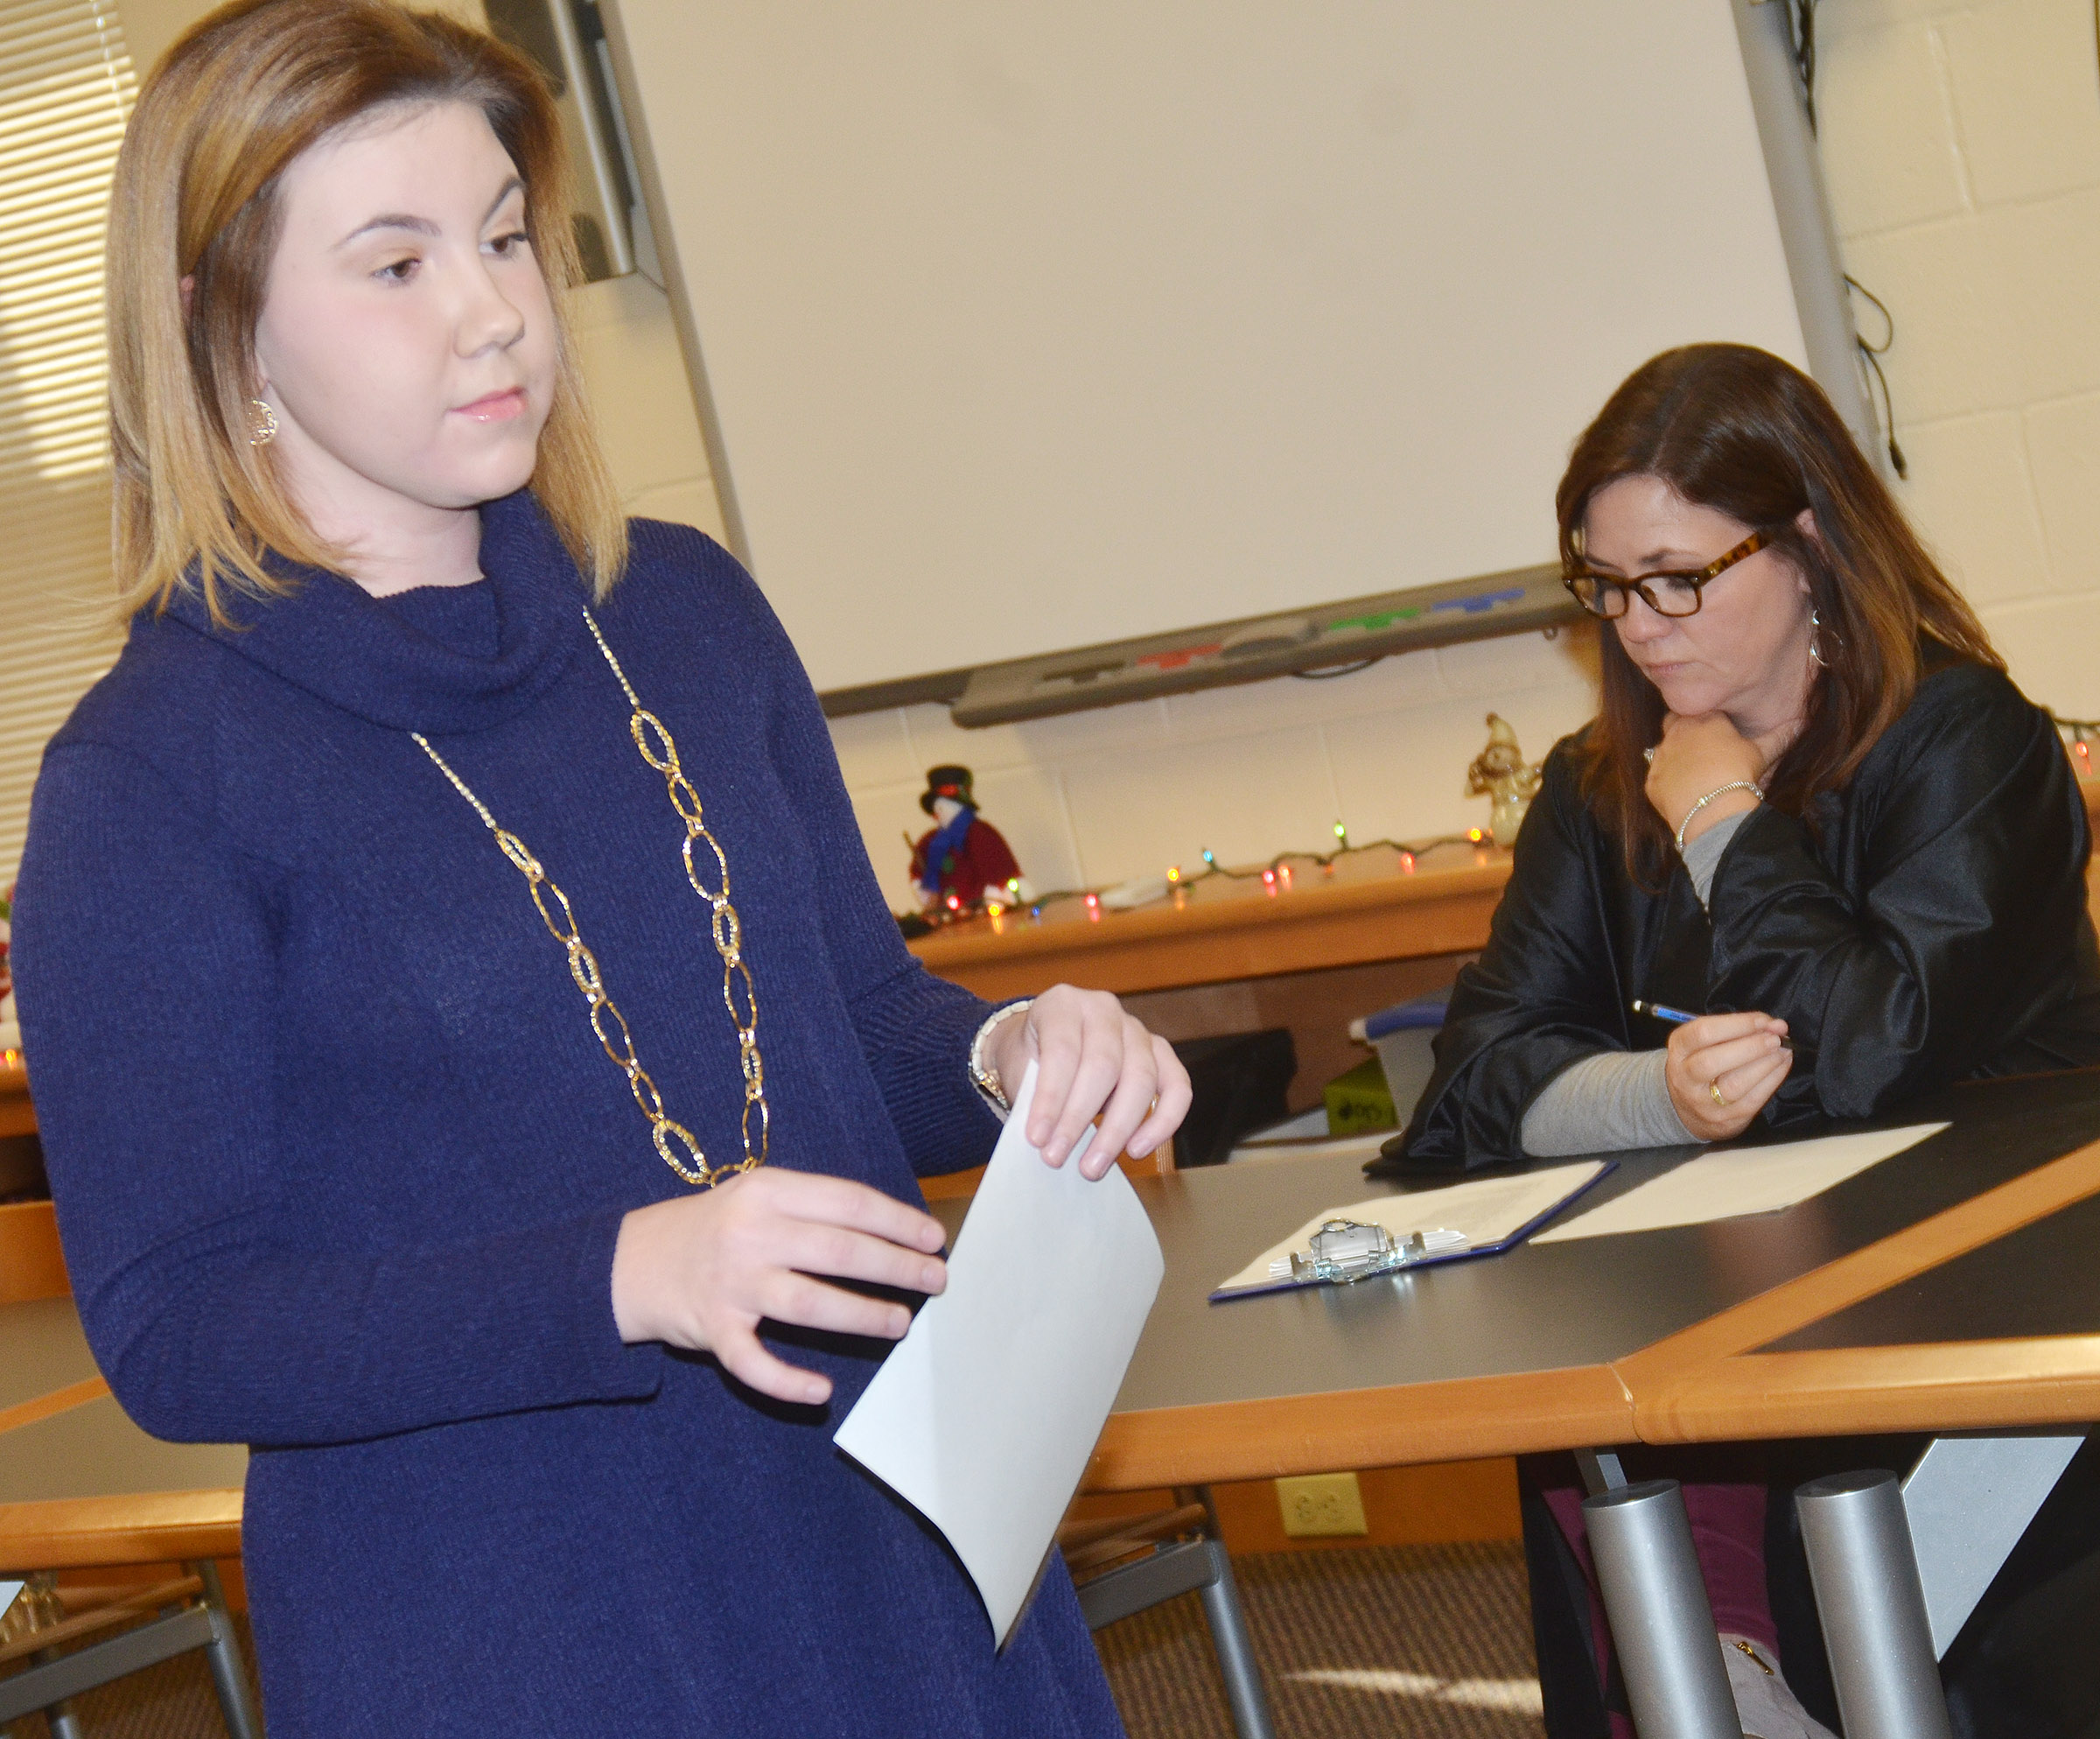 CHS sophomore Lauryn Agathen asks questions as a prosecutor, as teacher Susan Dabney listens while portraying a judge.